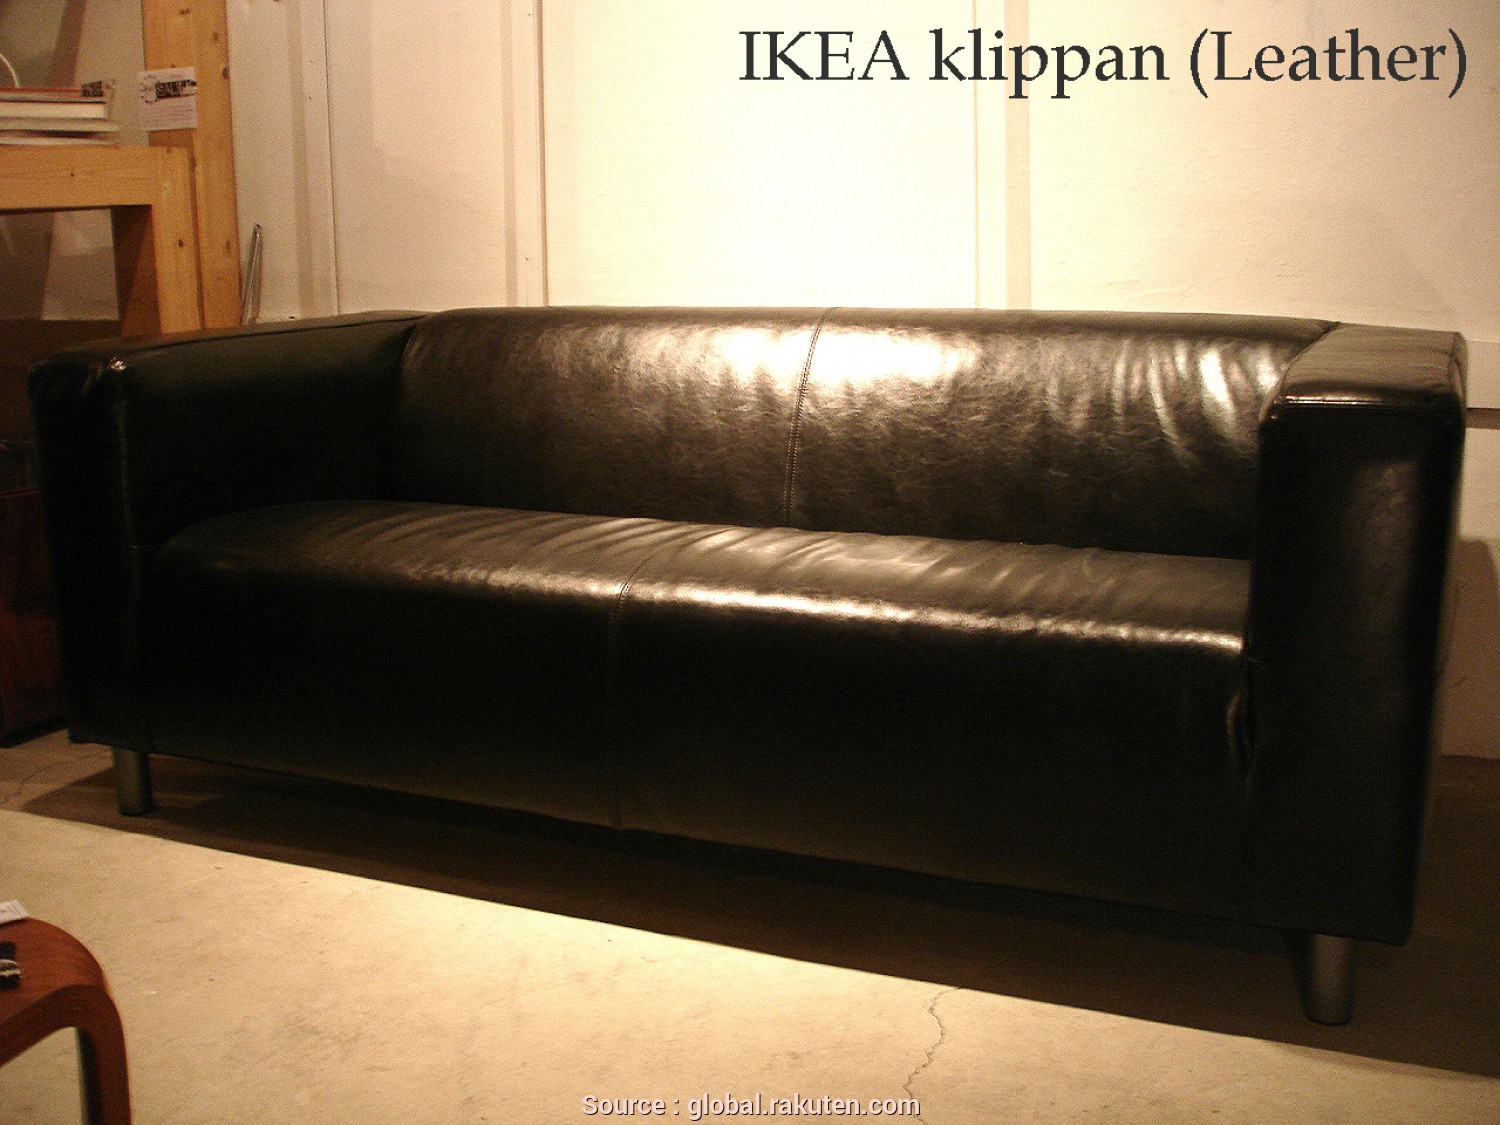 Klippan Ikea Romania, Completare SALE IKEA/ IKEA KLIPPAN/ クリッパンレザー, Criticism Value 113,715, Beauty Product